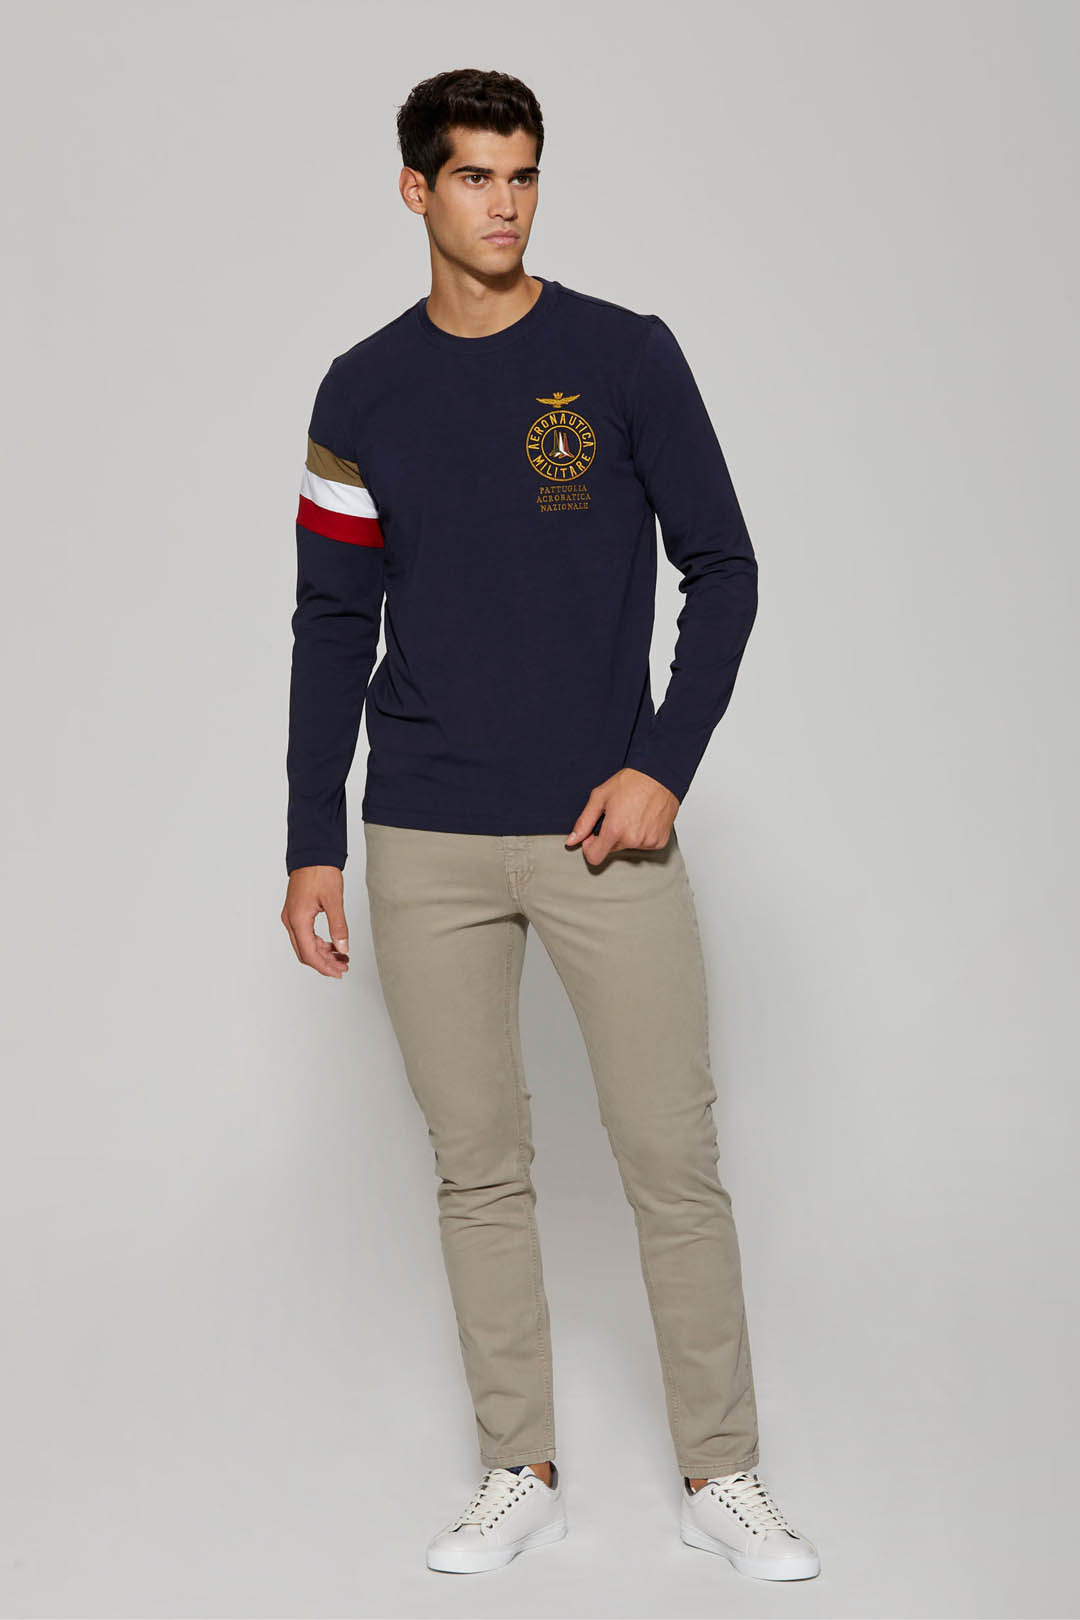 Frecce Tricolori long-sleeved t-shirt    4